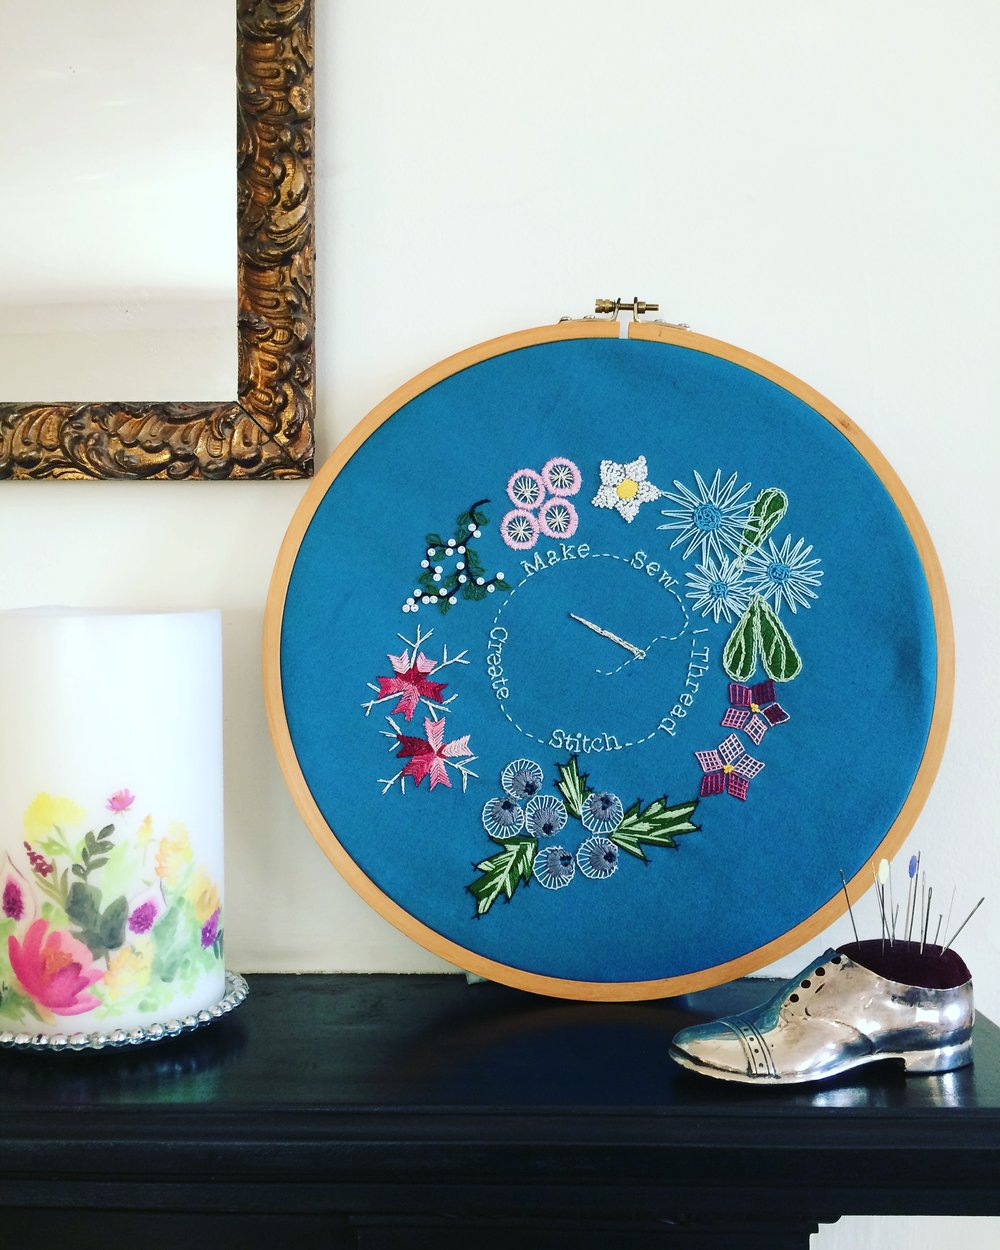 Winter Solstice embroidery